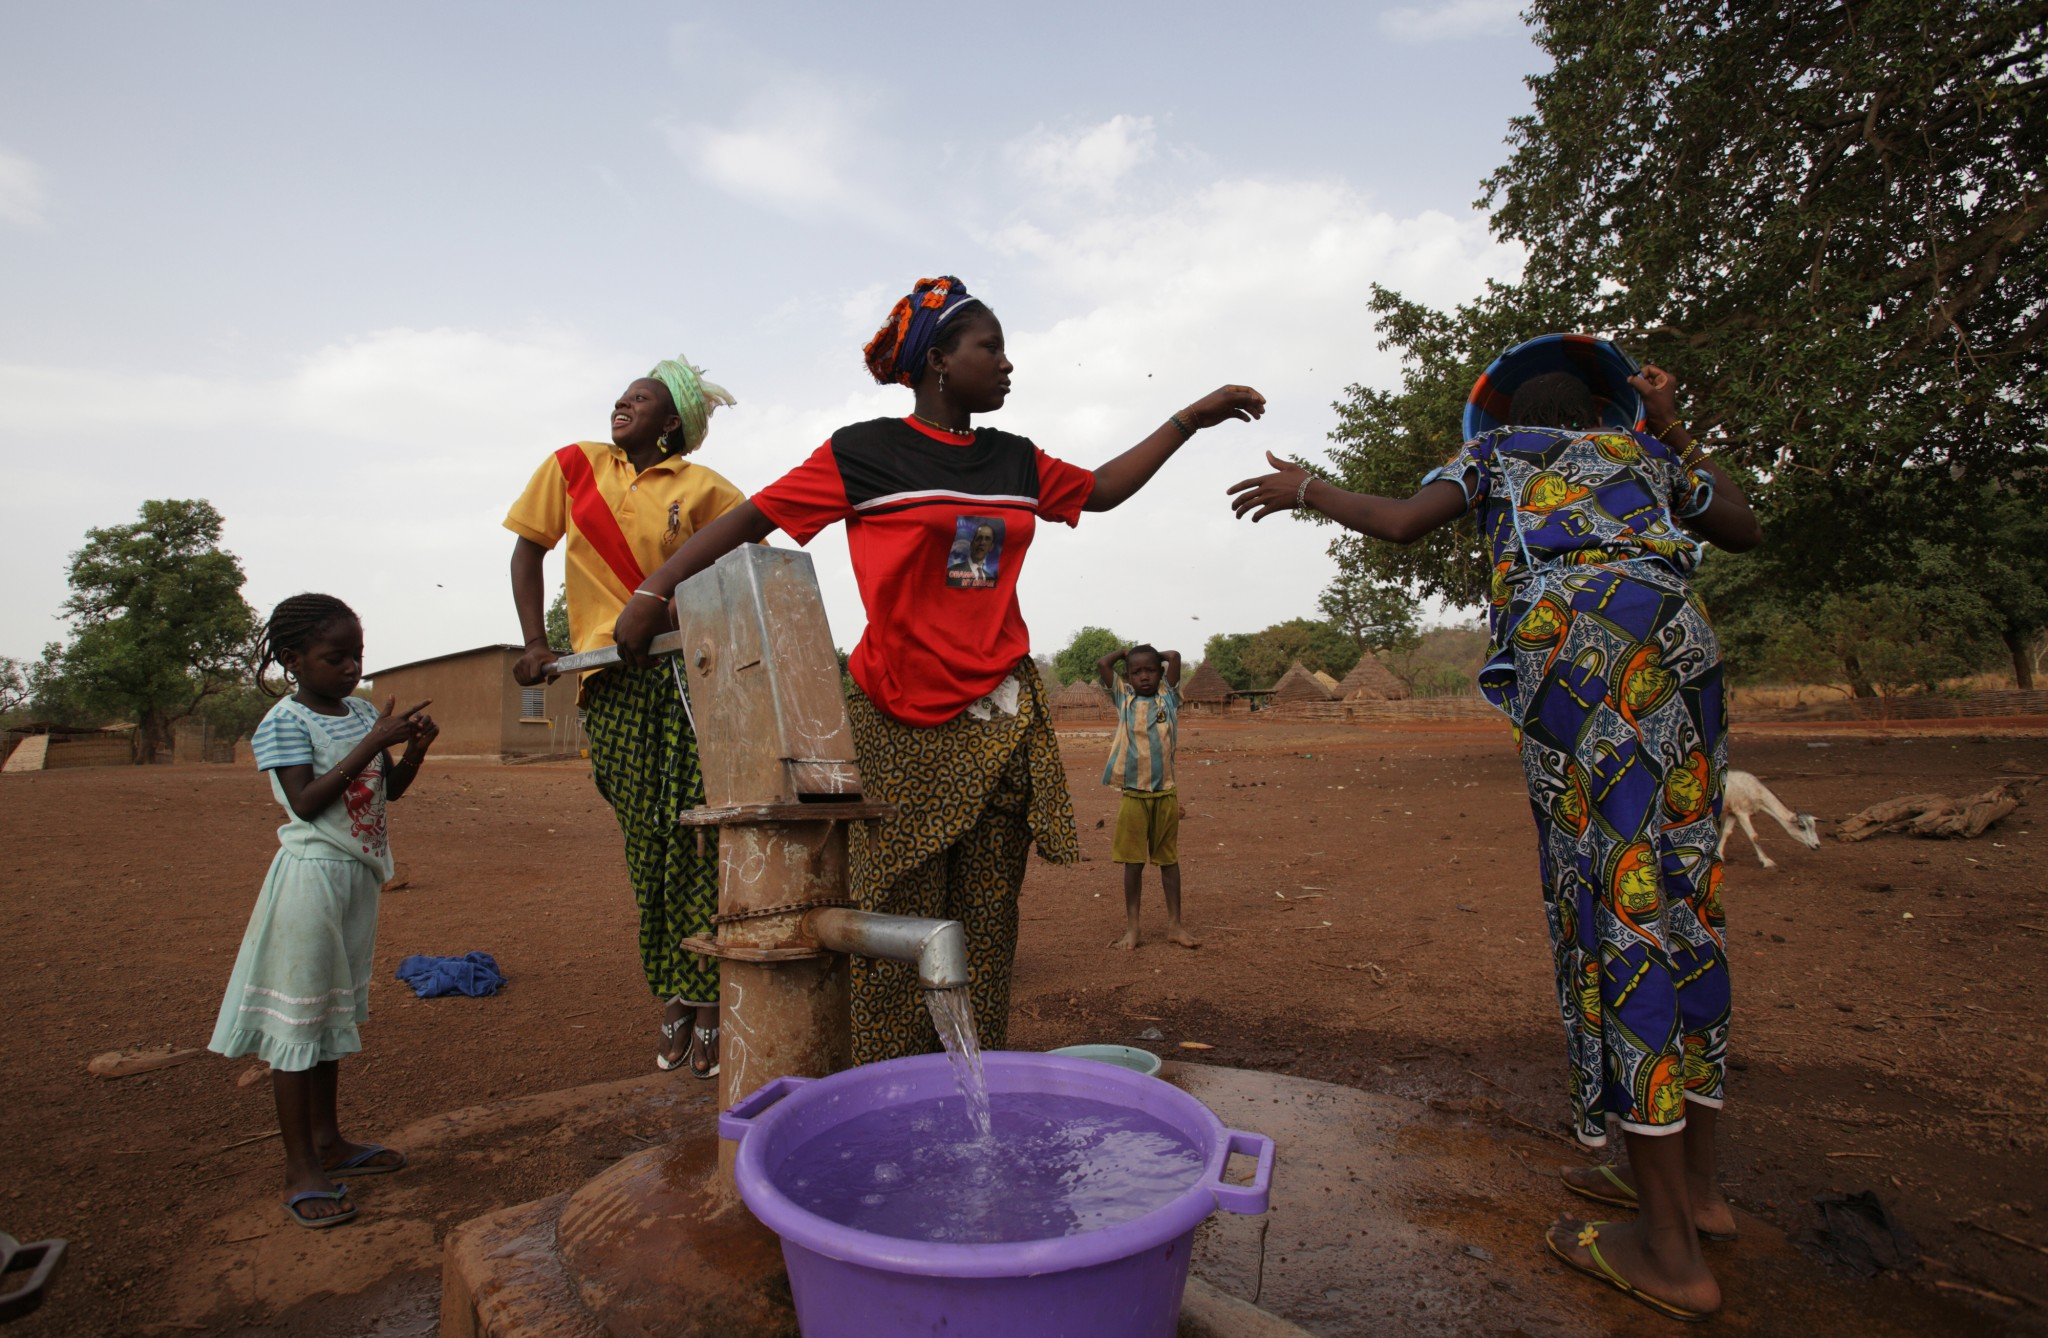 Six ways to fix up a well and get clean water | Oxfam